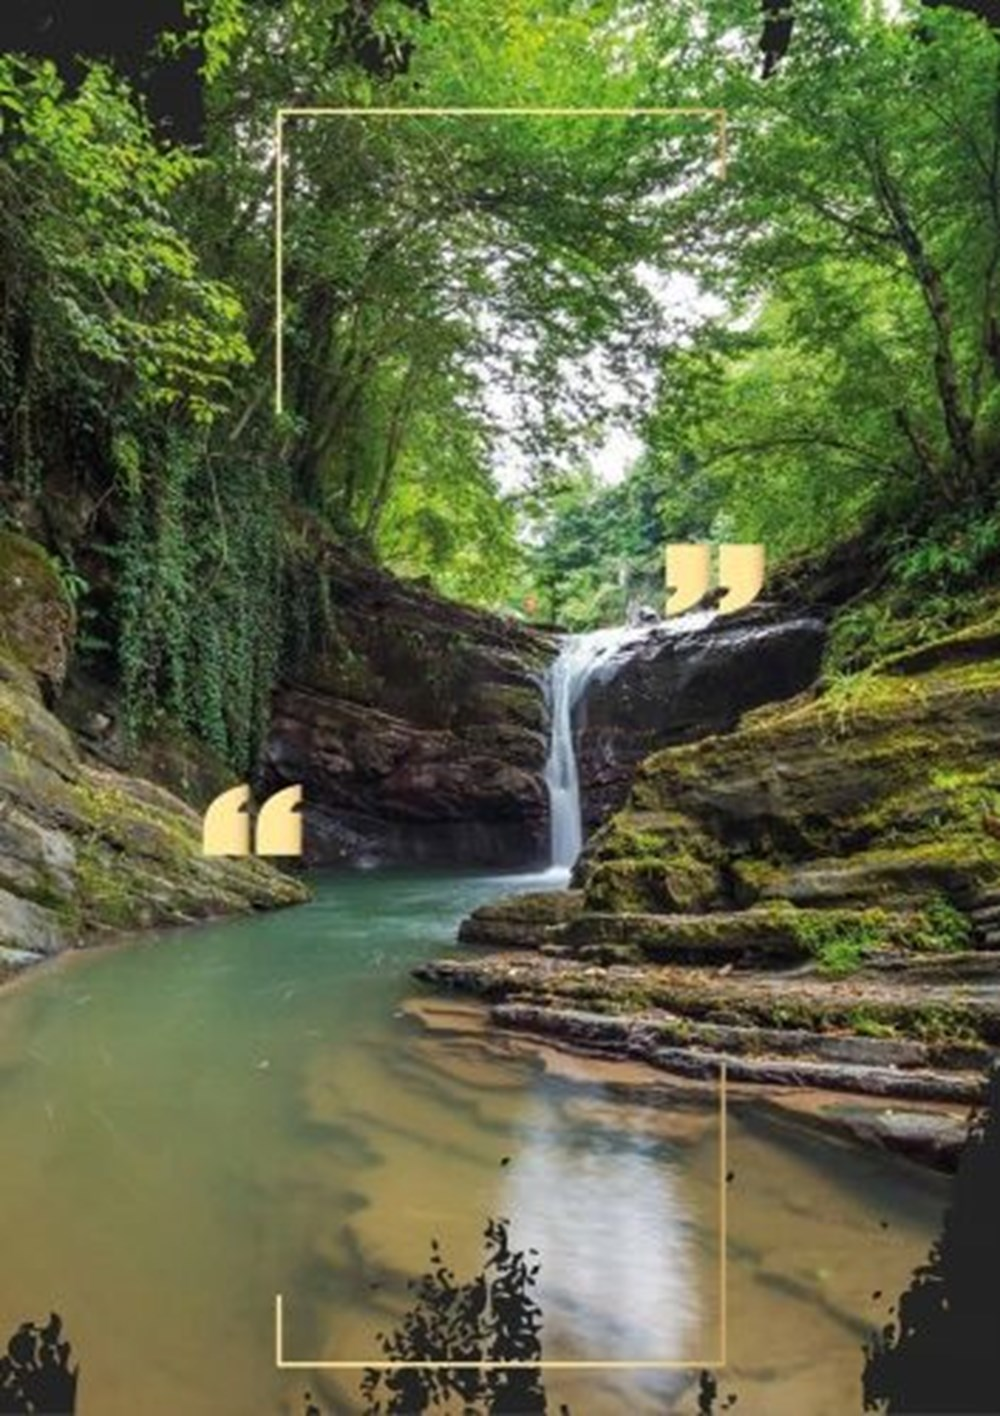 Waterfalls are being brought into tourism in Ordu - 8